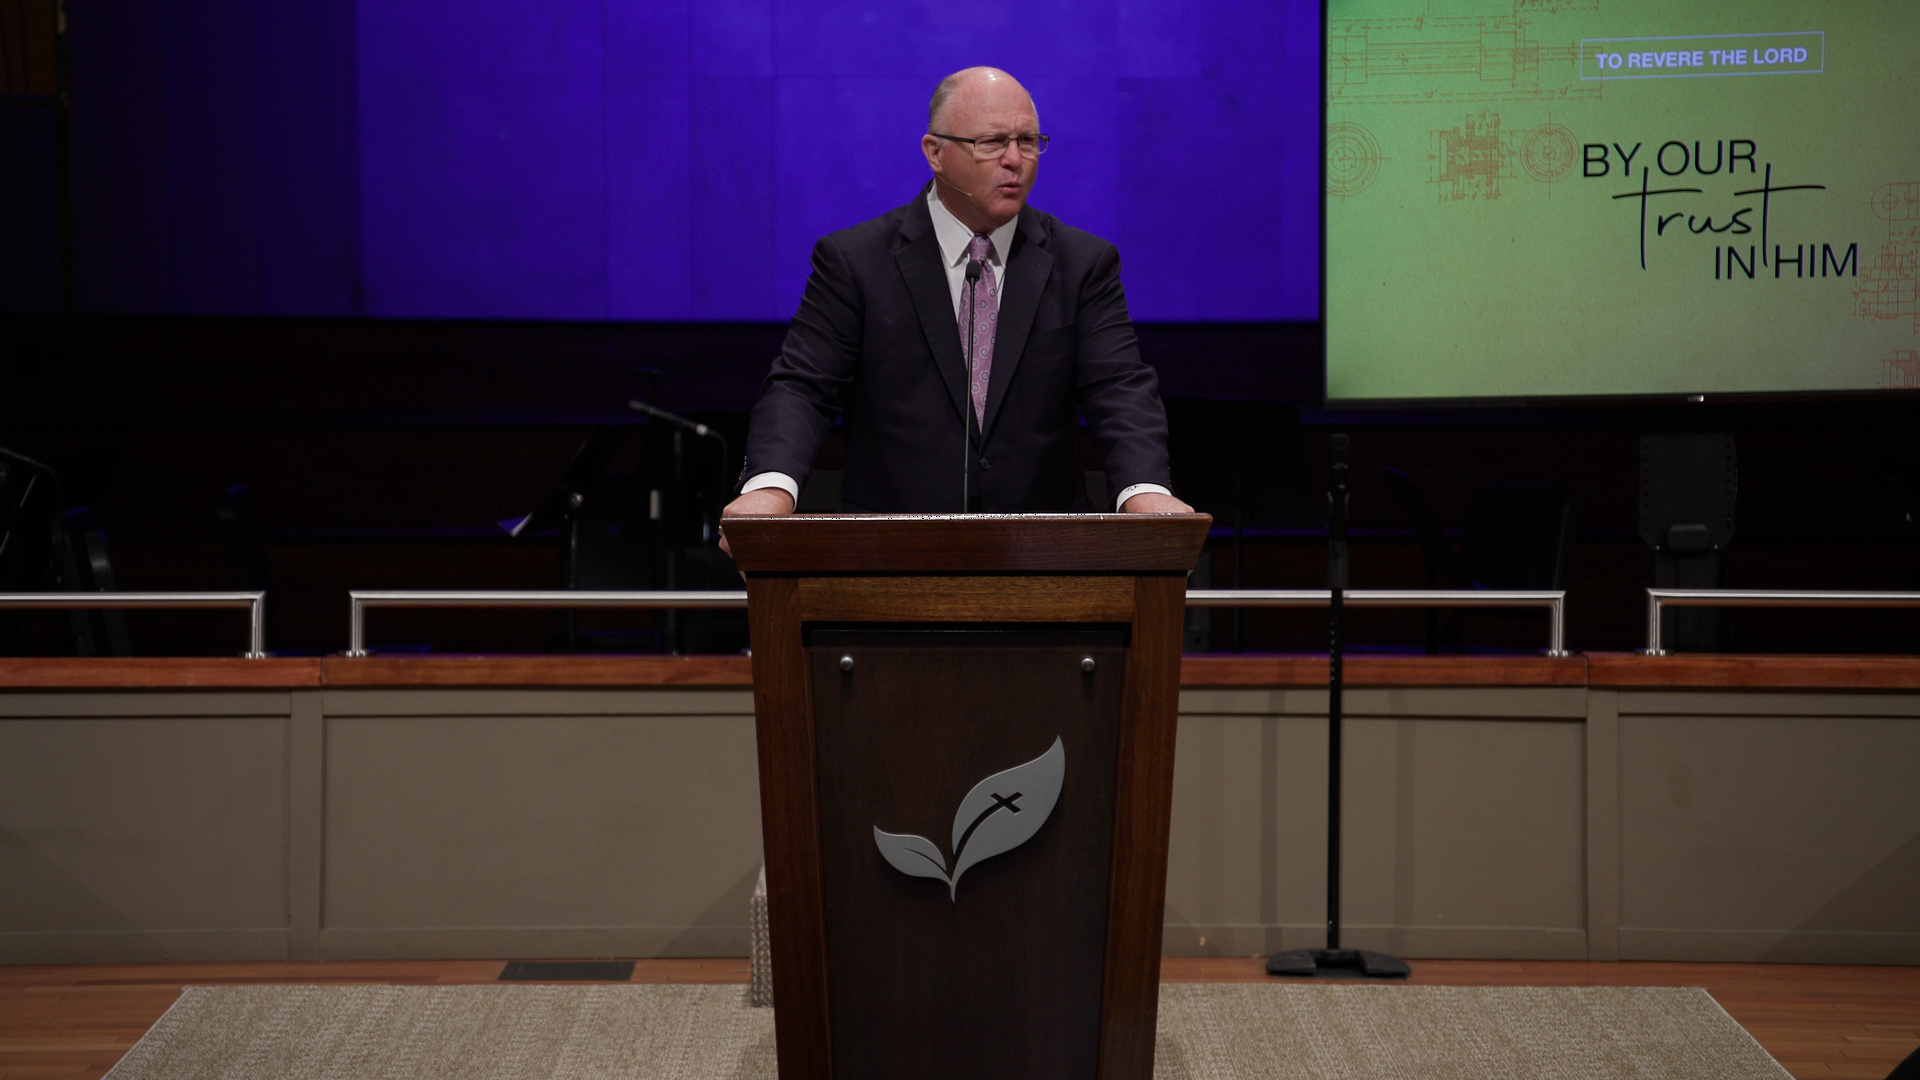 Pastor Paul Chappell: Leadership is a Choice